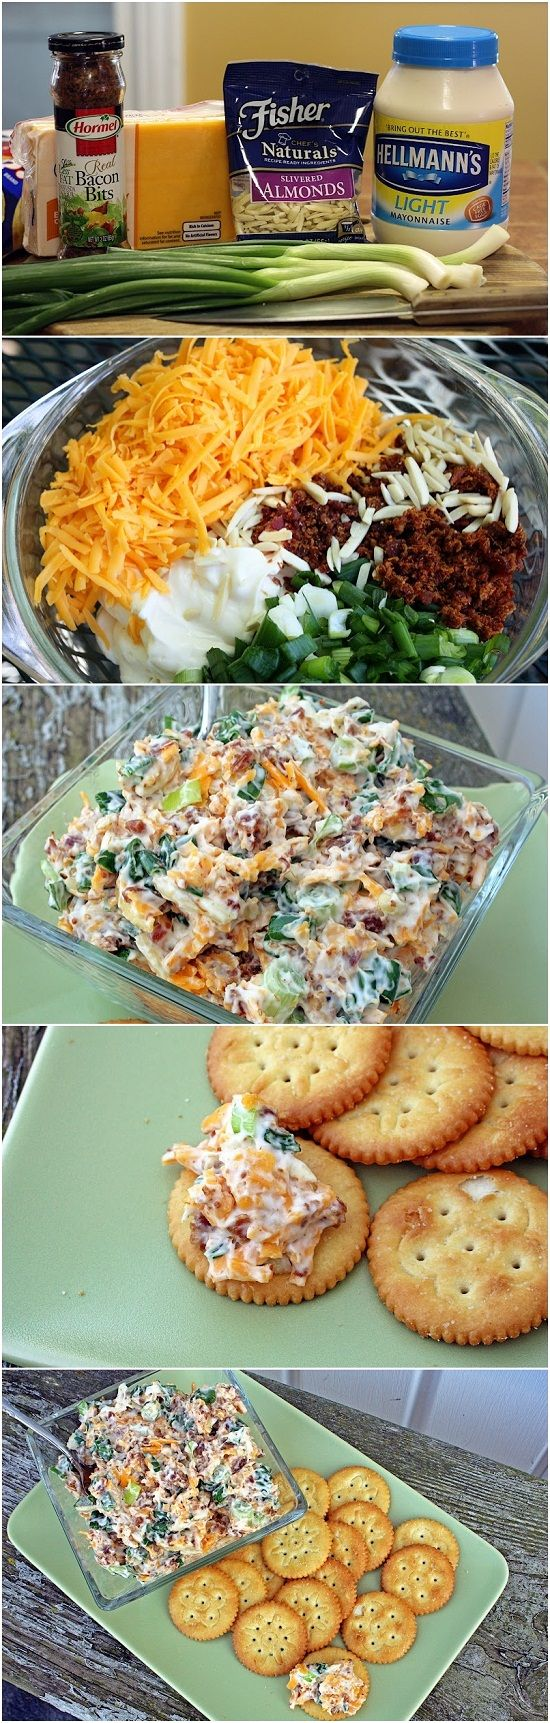 Neiman Marcus Dip - 6 green onions chopped, 8 oz shredded cheddar, 1 1/2 cups mayonnaise, 1 jar Hormel Real Bacon Bits, 1 pkg slivered almonds – Mix all ingredients together, Chill for 2 hours, Serve with crackers.